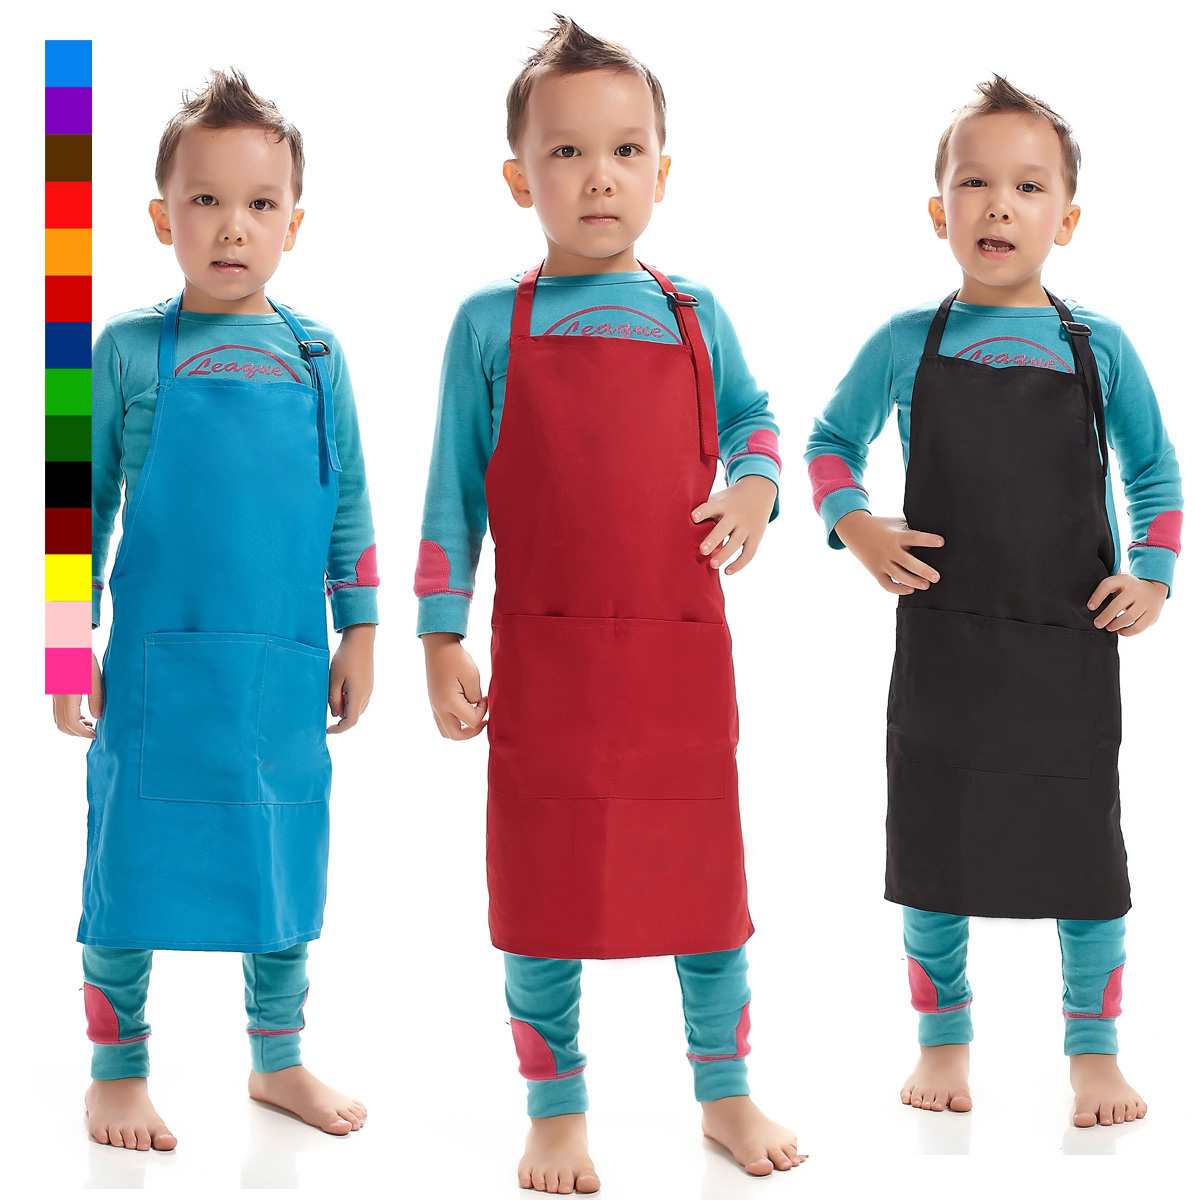 Seven Korean children painting lotus simple apron clothes 88006 adjustable sleeveless apron overclothes custom embroidery(China (Mainland))